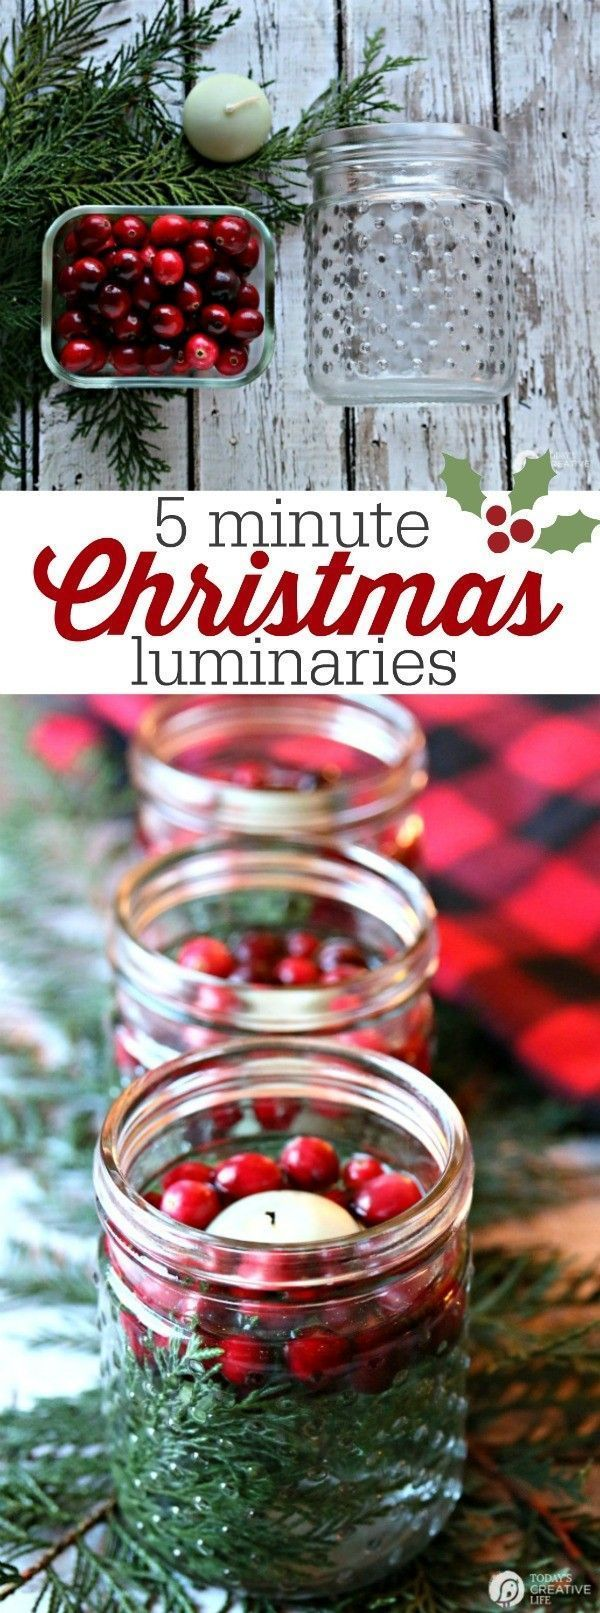 5 minute easy christmas luminaries | centerpieces, table